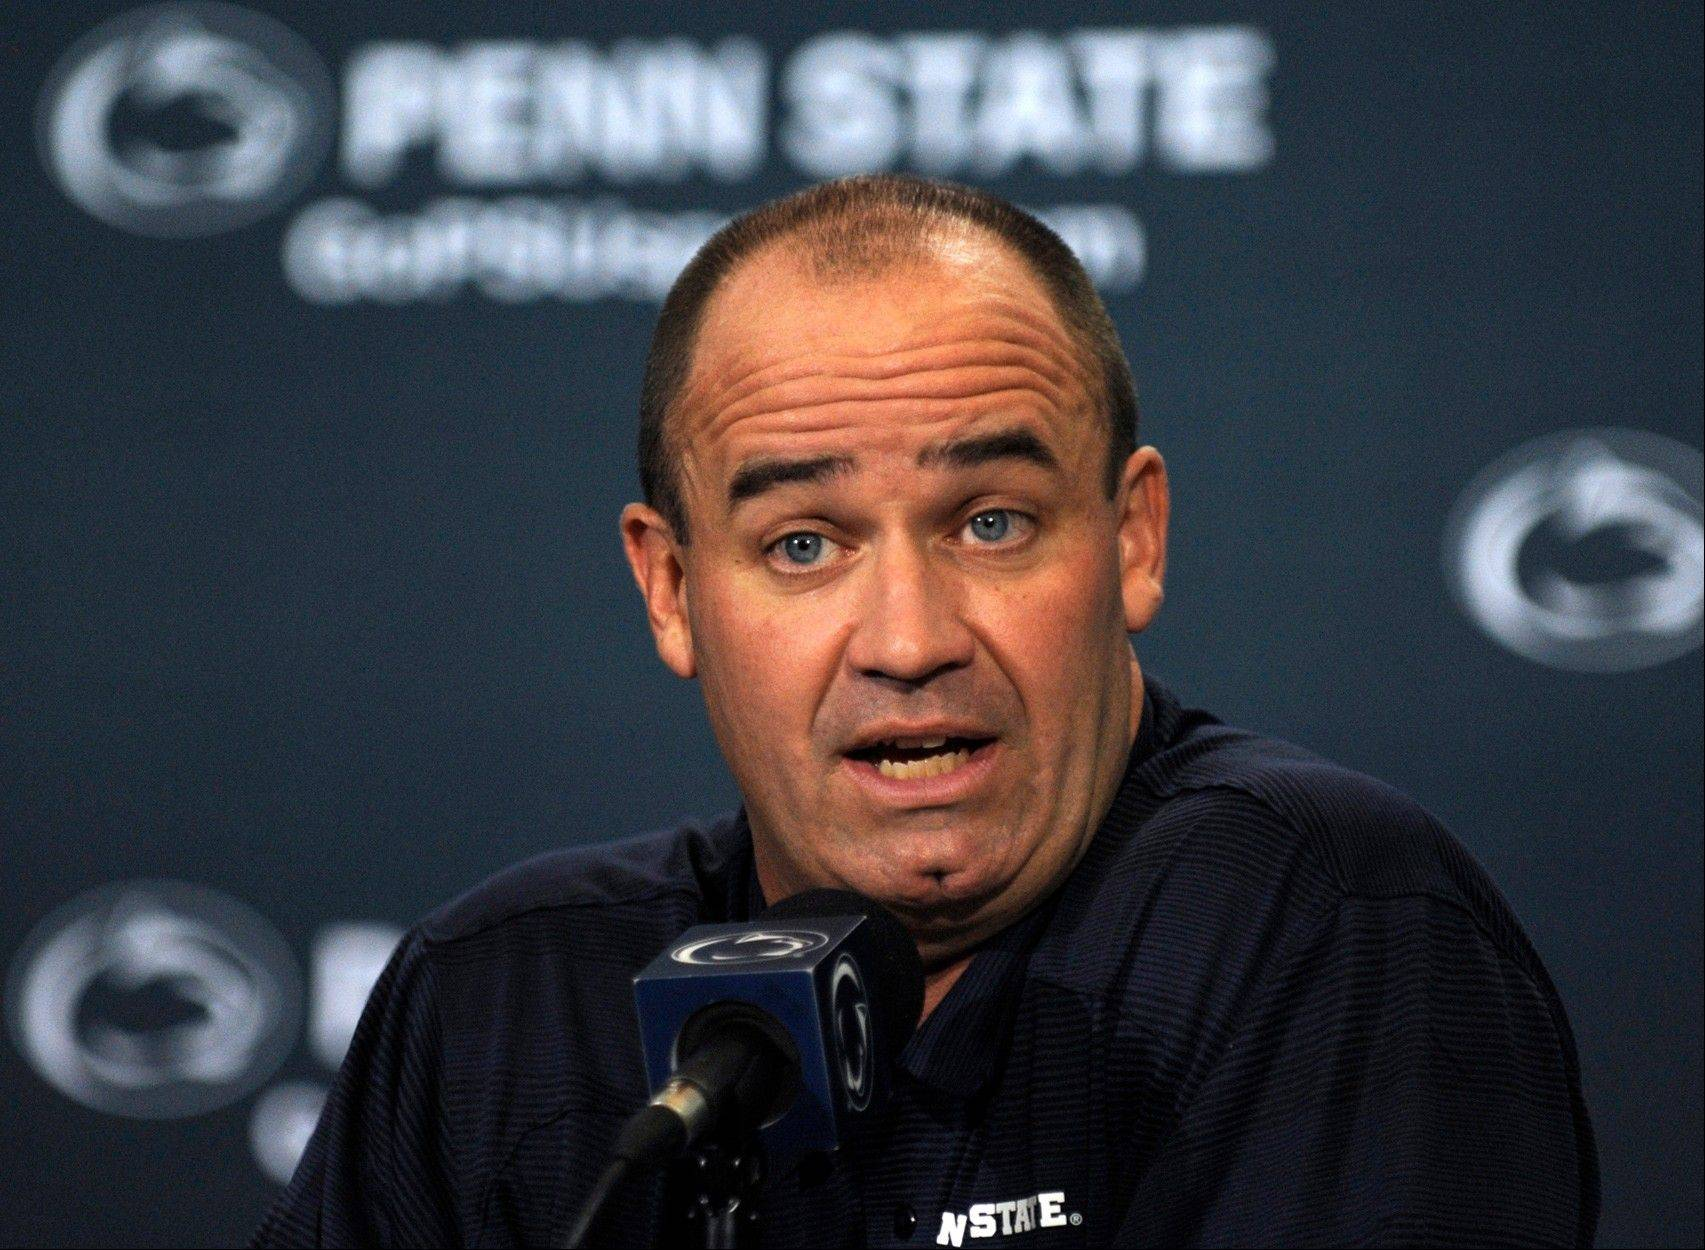 Penn State head football coach Bill O�Brien says �you�ll find out who the quarterback is on the first play of the game.�